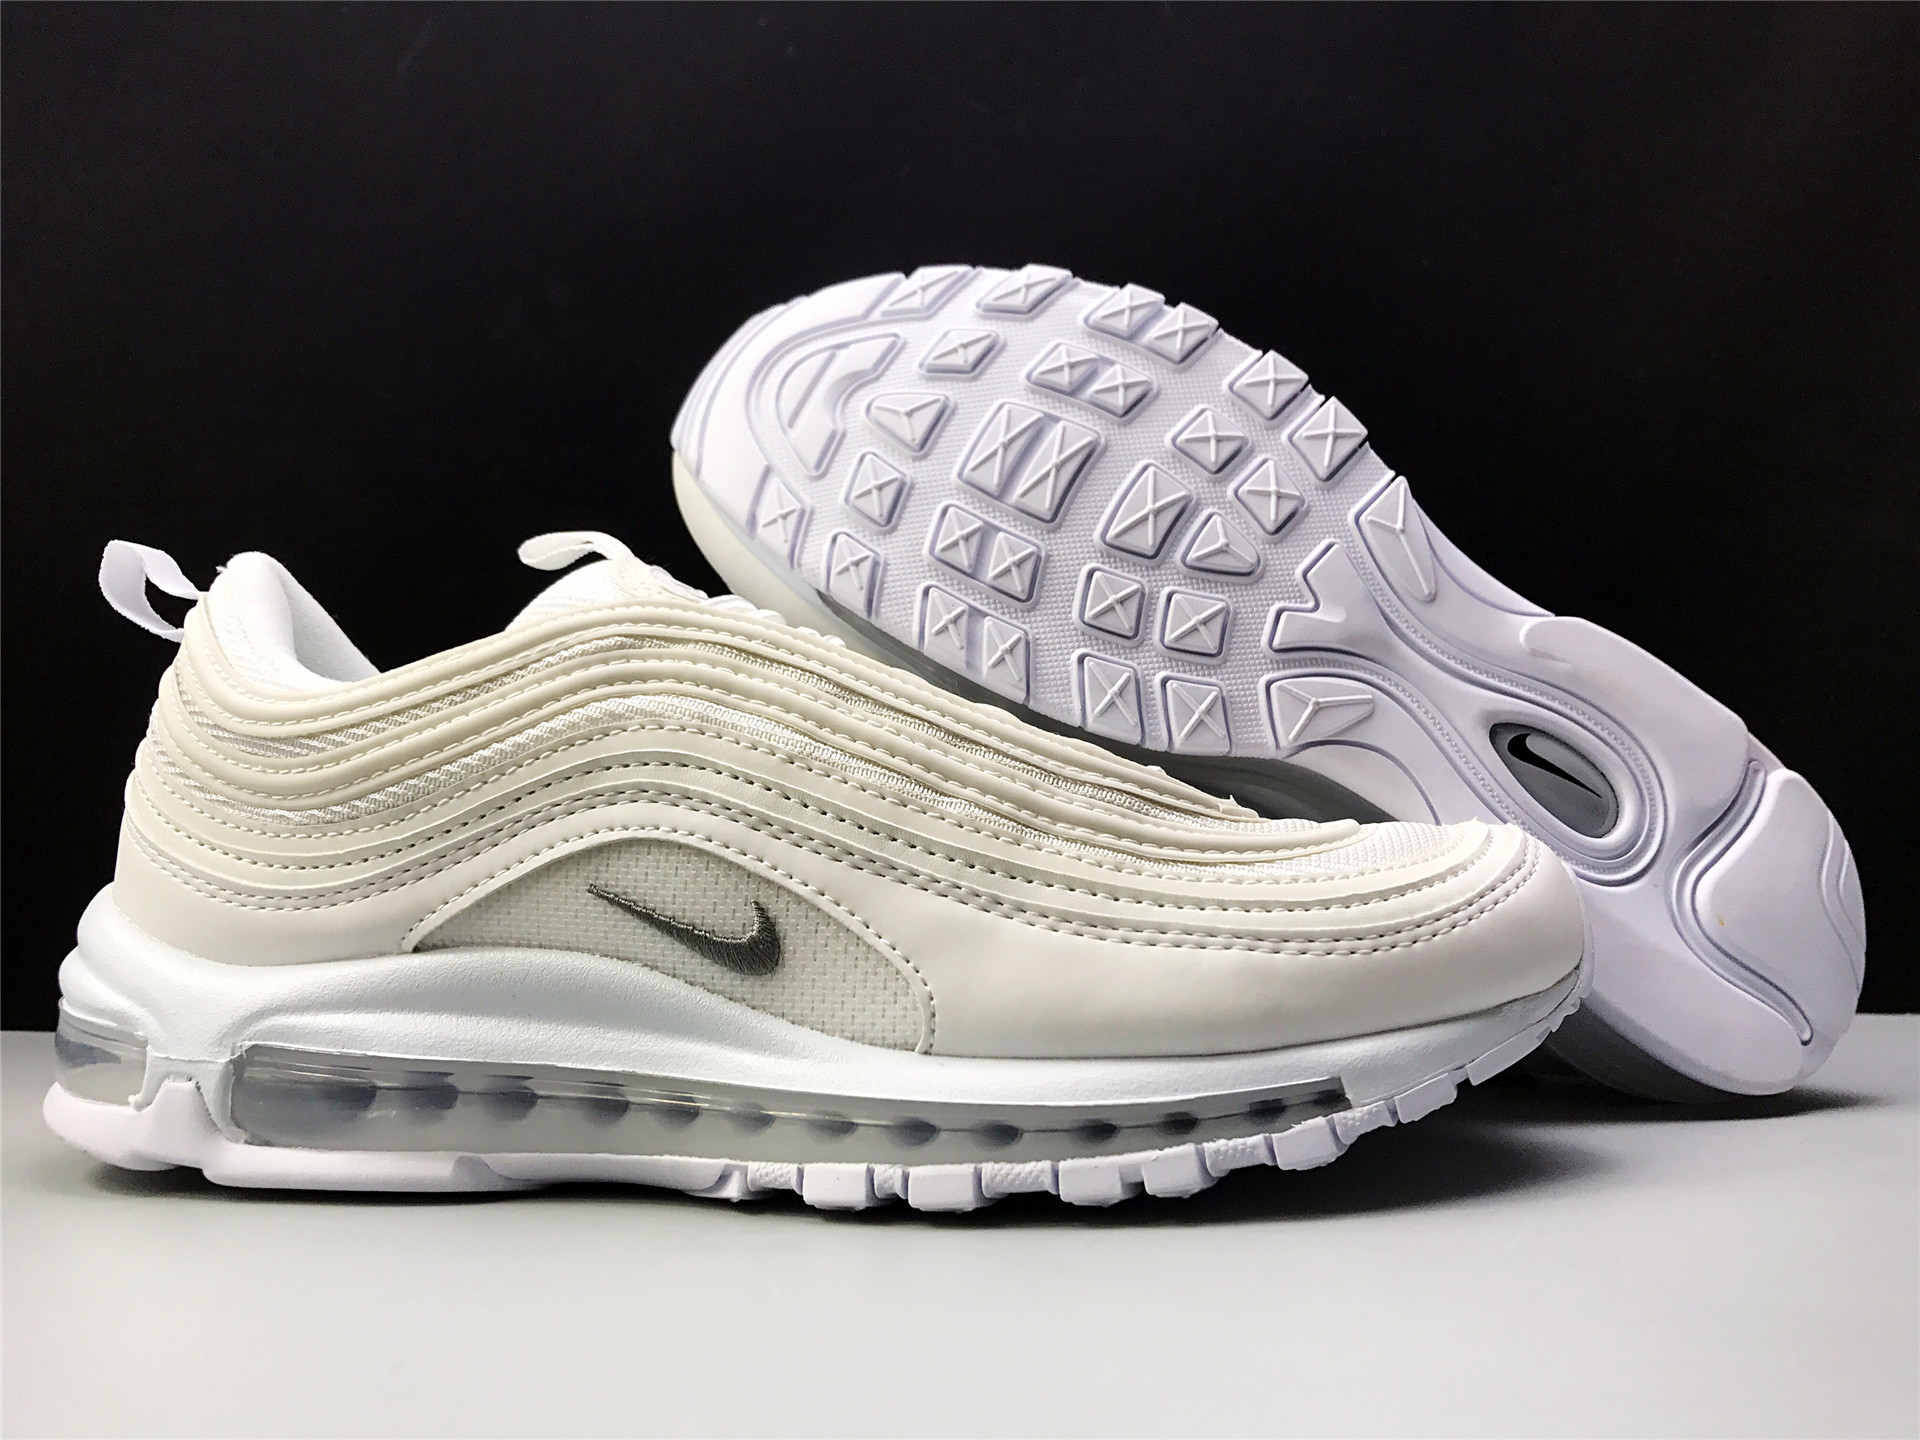 f126b73a1b5 2018 Nike Air Max 97 Triple White White Wolf Grey Black Running Shoe For  Sale